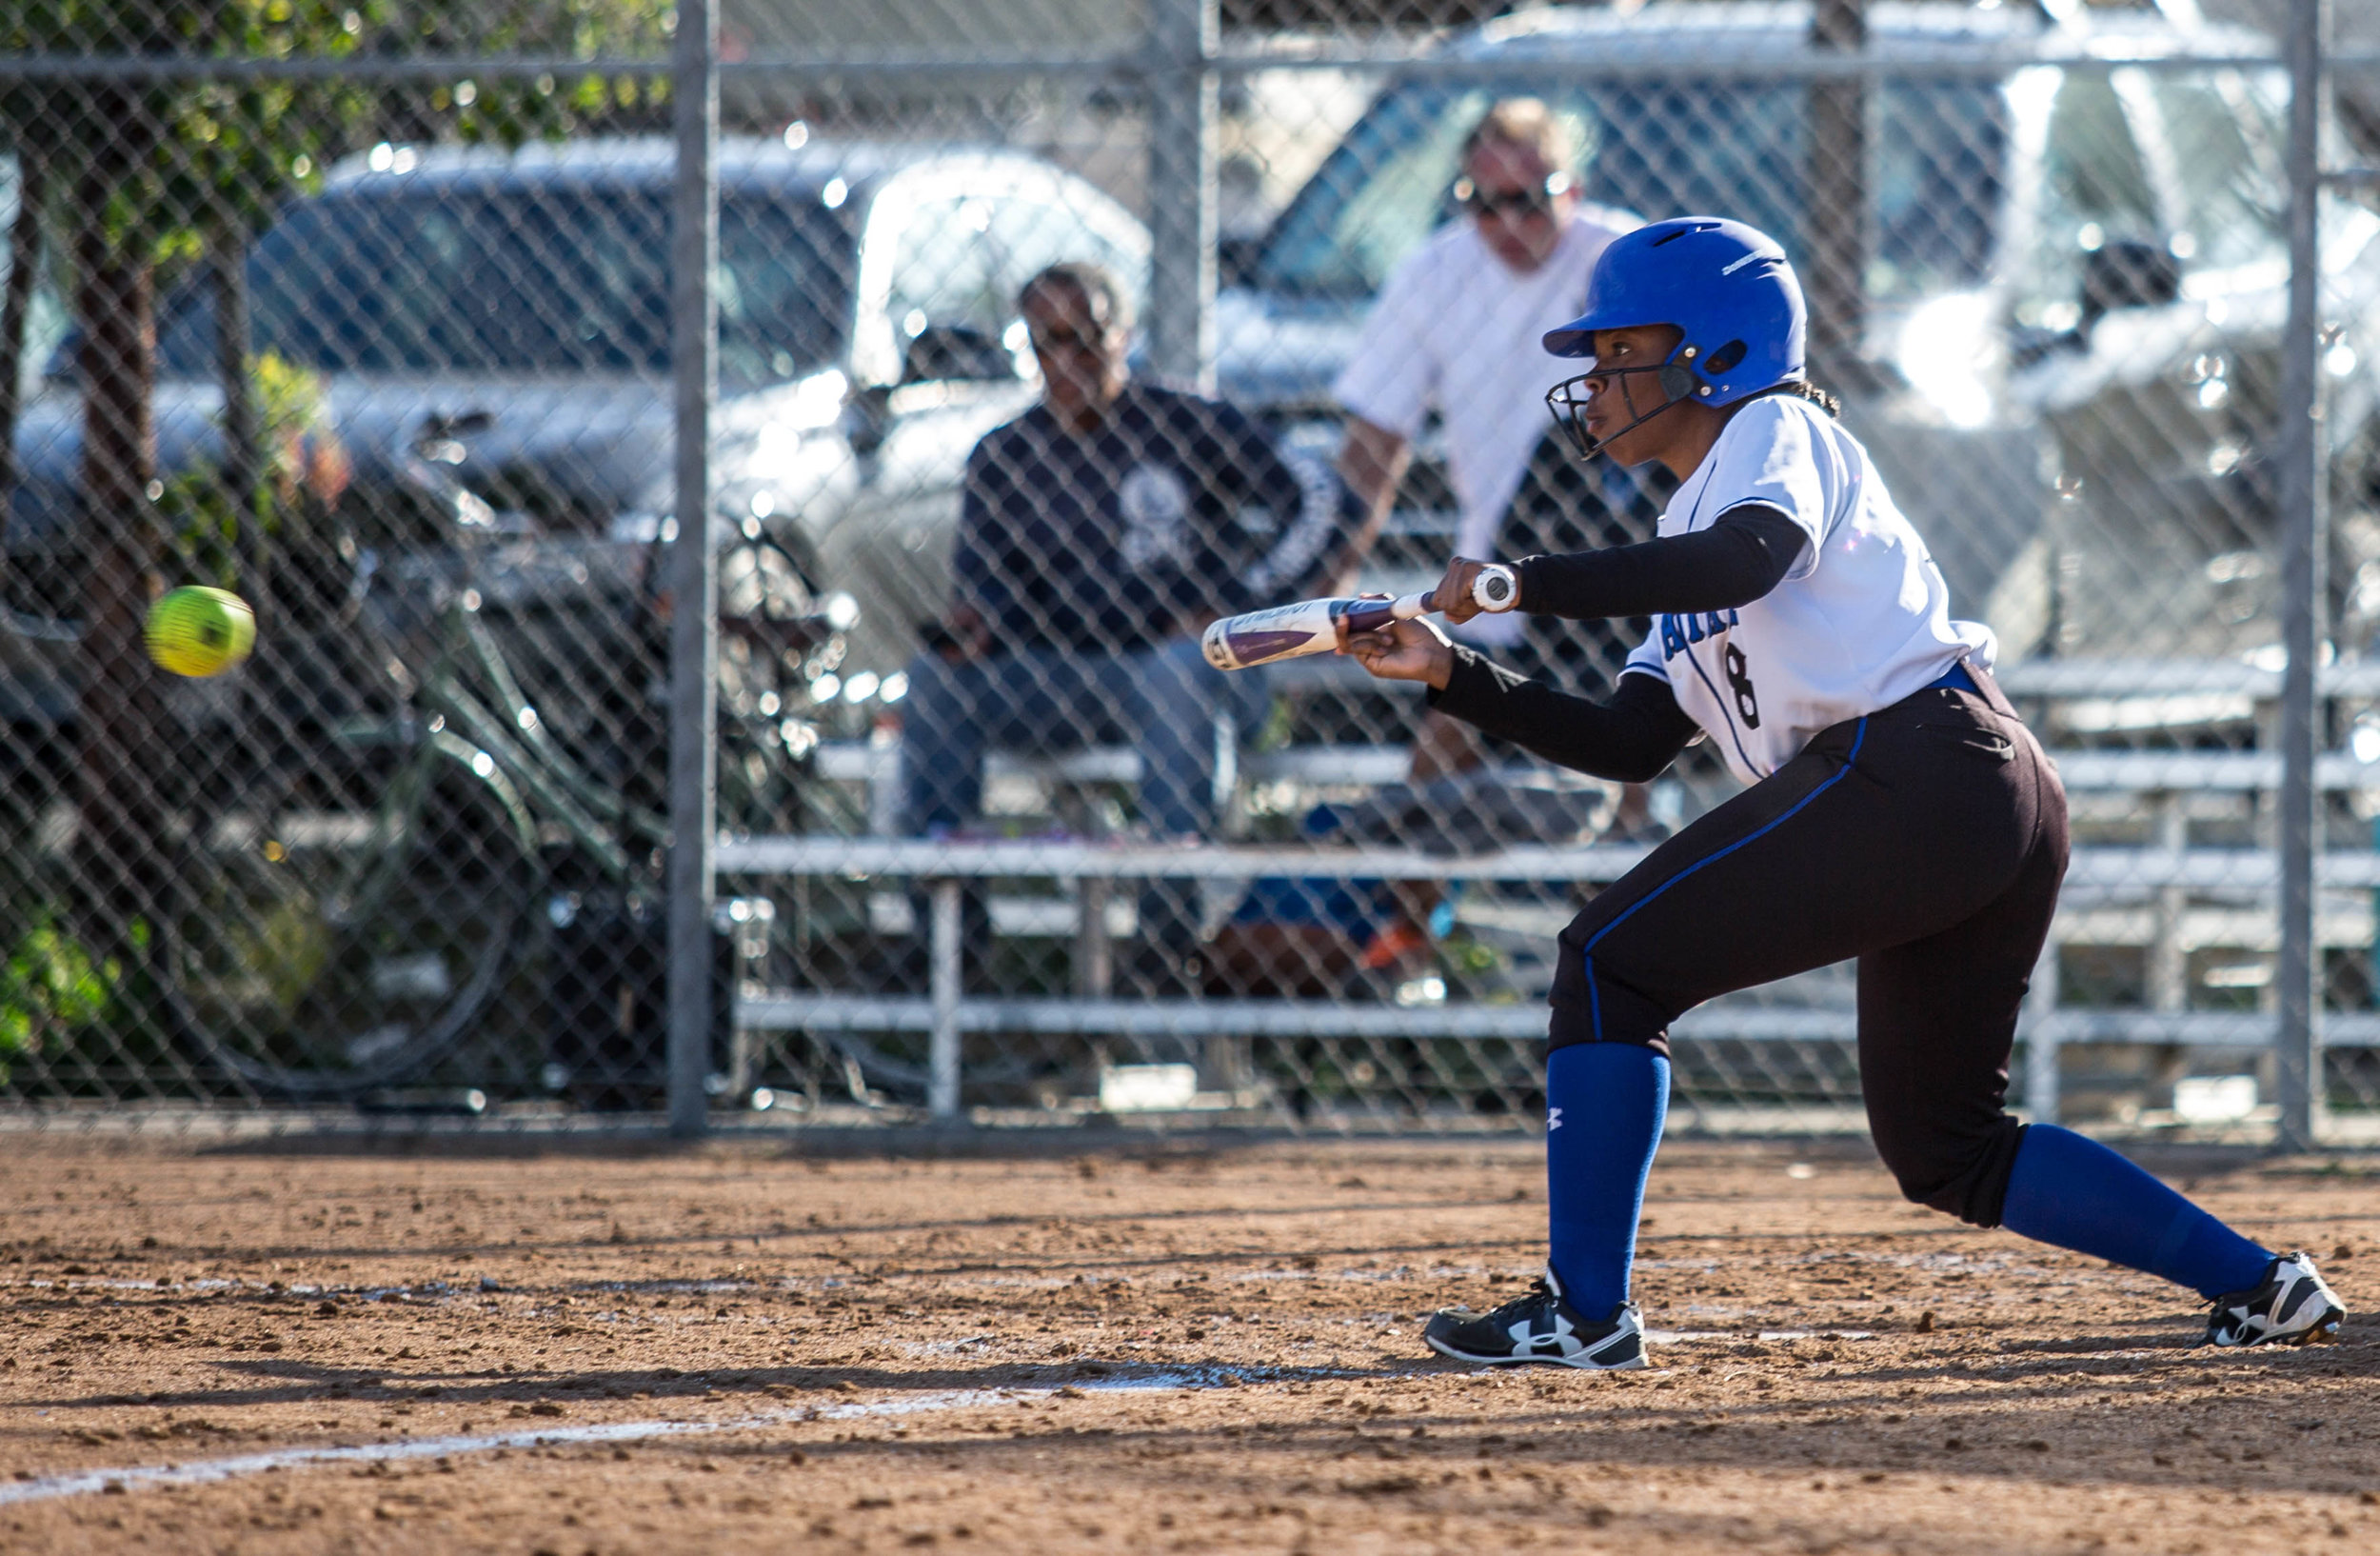 Santa Monica College Corsair batter Kahlaysia Miller #8 (left, white) successfully bunts the ball during the top of the 6th inning at the Santa Monica College Corsair Field in Santa Monica California, on Tuesday, March 6, 2018. The Corsairs would go on to lose the game to Bakersfield College 0 – 9, making their tally for the season 6 wins and 11 losses. (Corsair Photo: Matthew Martin)